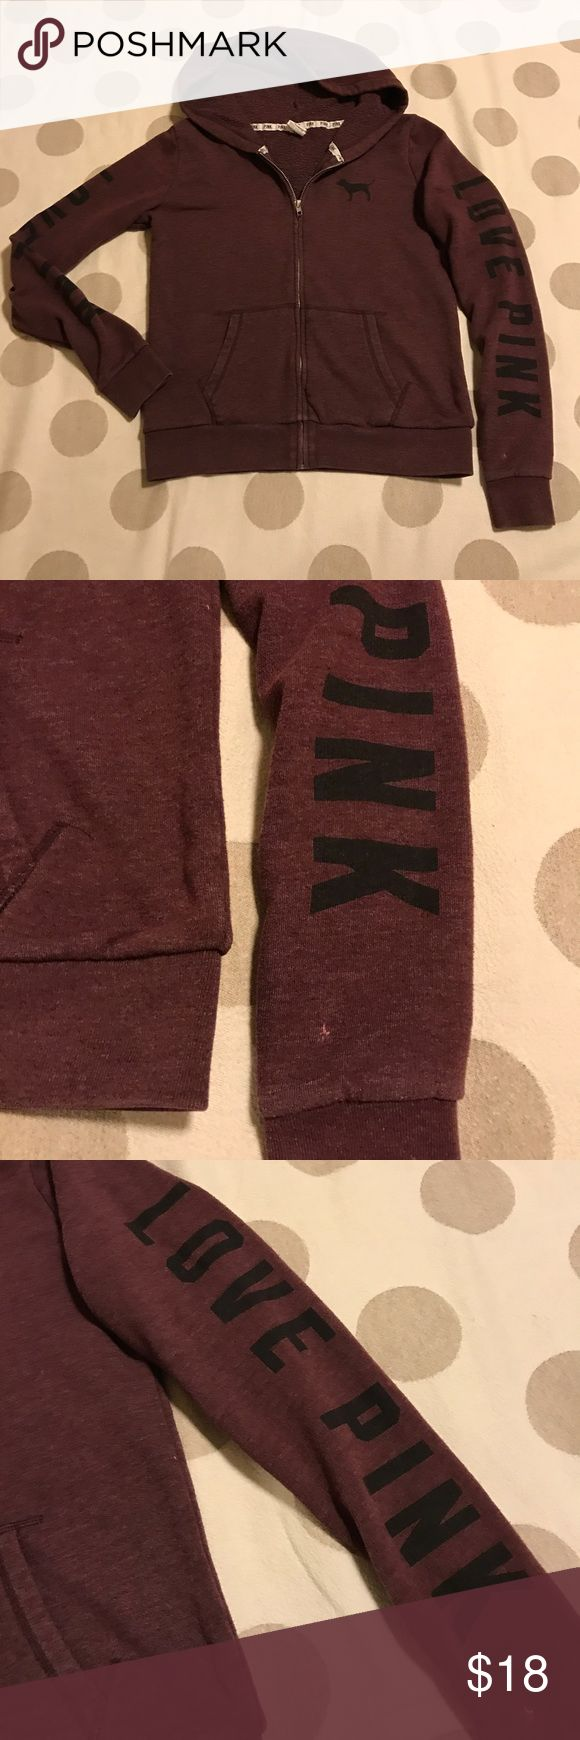 """VS PINK burgundy """"love pink"""" hoodie You're looking at preloved Victoria's Secret brand hoodie in size small. Burgundy with distressed look. The VS Pink black puppy logo is on left chest, says """"Love Pink"""" down the tops of both arms. Soft and light weight. Good condition- is missing drawstring for good and has a small stain on left arm. 💙offers 💙20% off discount on bundles 🚫PayPal 🚫trades PINK Victoria's Secret Tops Sweatshirts & Hoodies"""